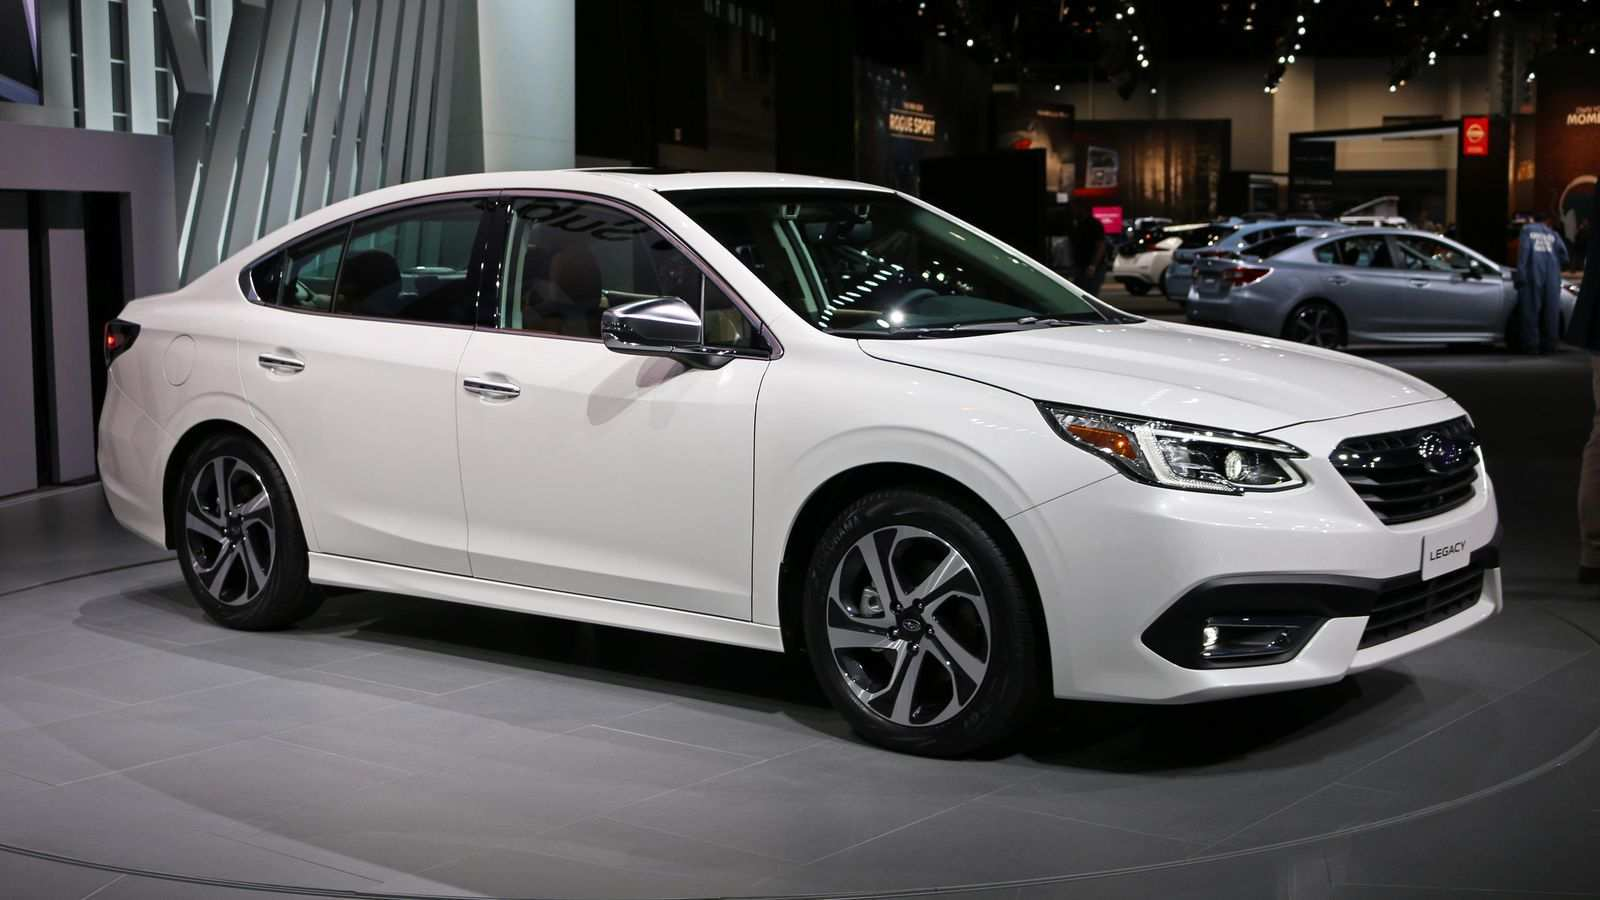 82 All New When Will 2020 Subaru Legacy Be Available Release